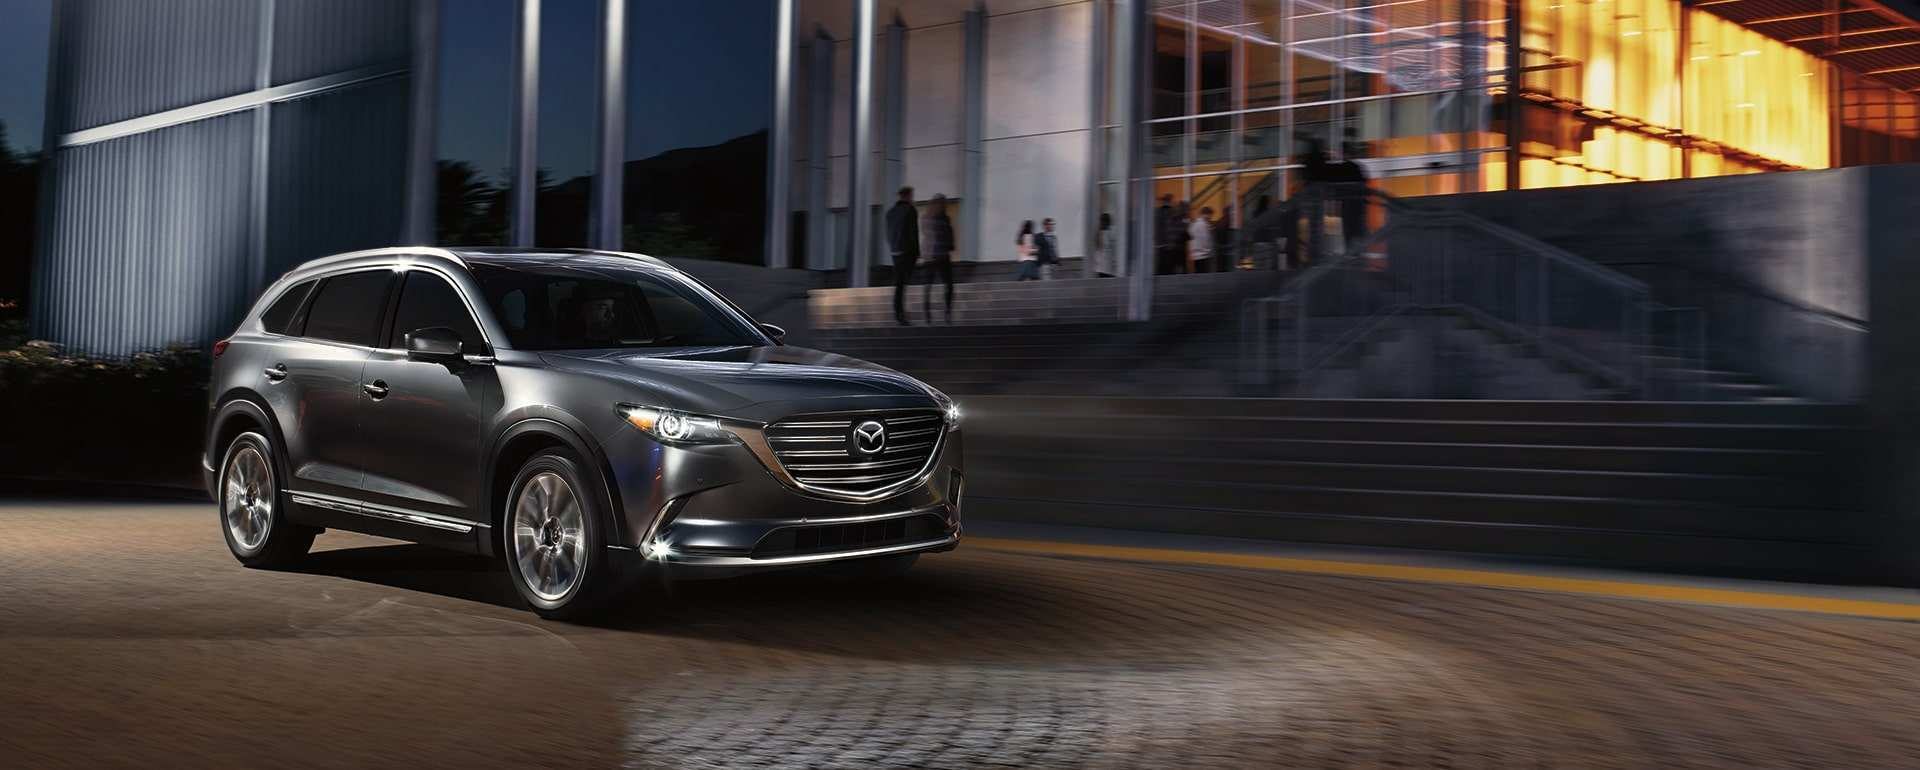 26 New 2019 Mazda CX 9 Redesign And Review